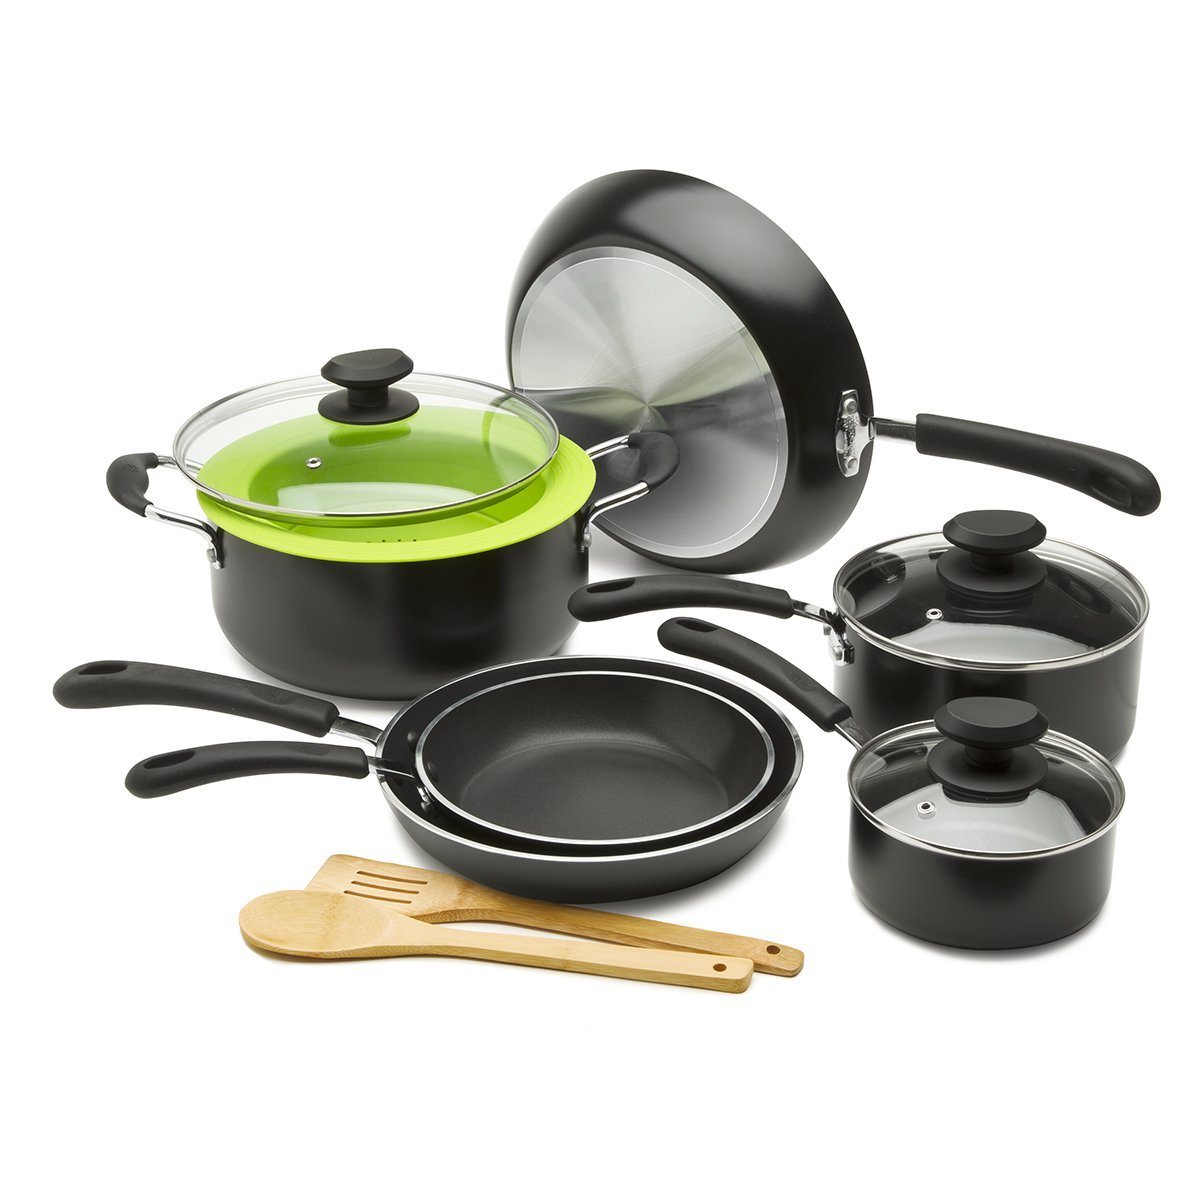 Ecolution Nonstick Cookware Set, 12 Piece -  Heavy Weight, Includes Vented Lids, Steamer, Bamboo Cooking Utensils,  Black by Ecolution